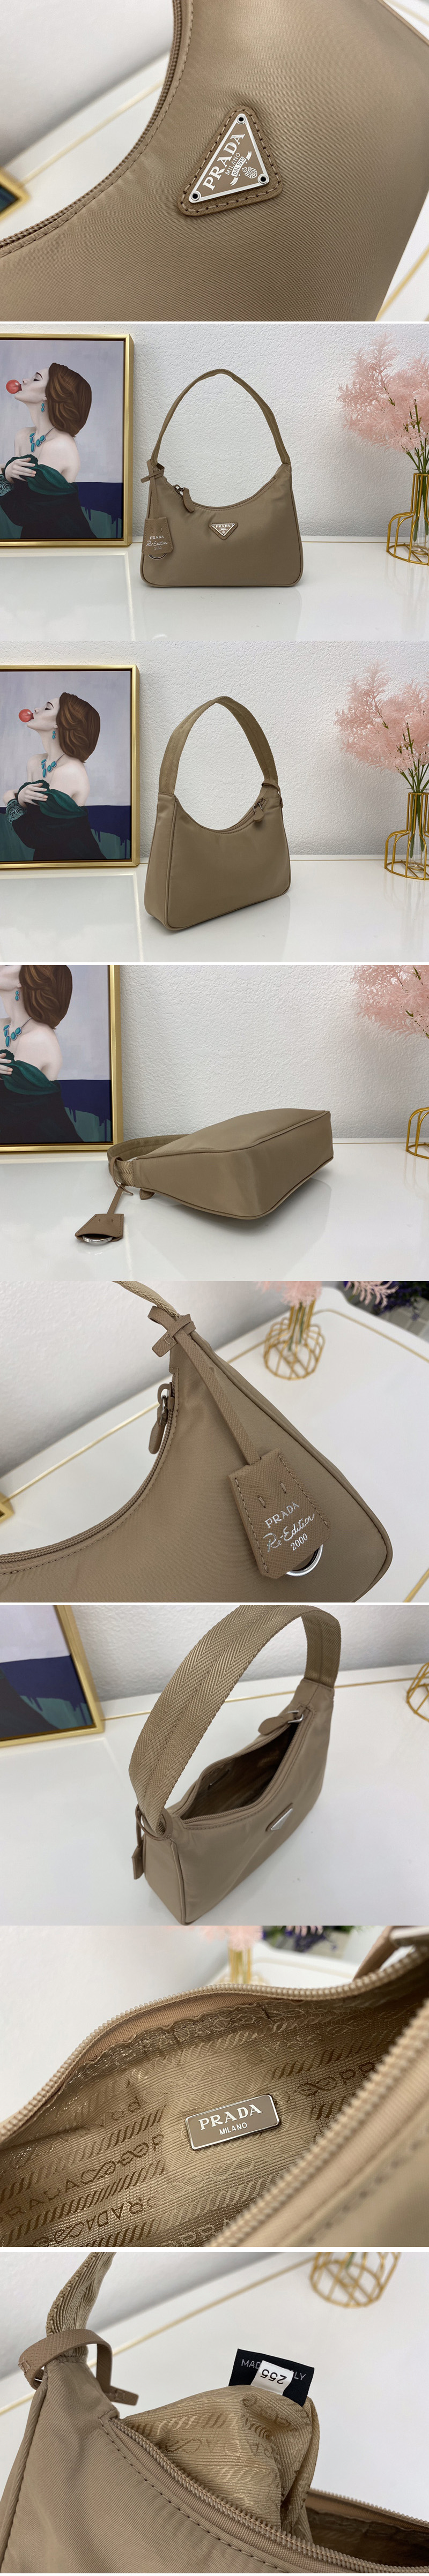 Replica Prada 1NE515 Re-Edition 2000 nylon mini-bag in Apricot Nylon